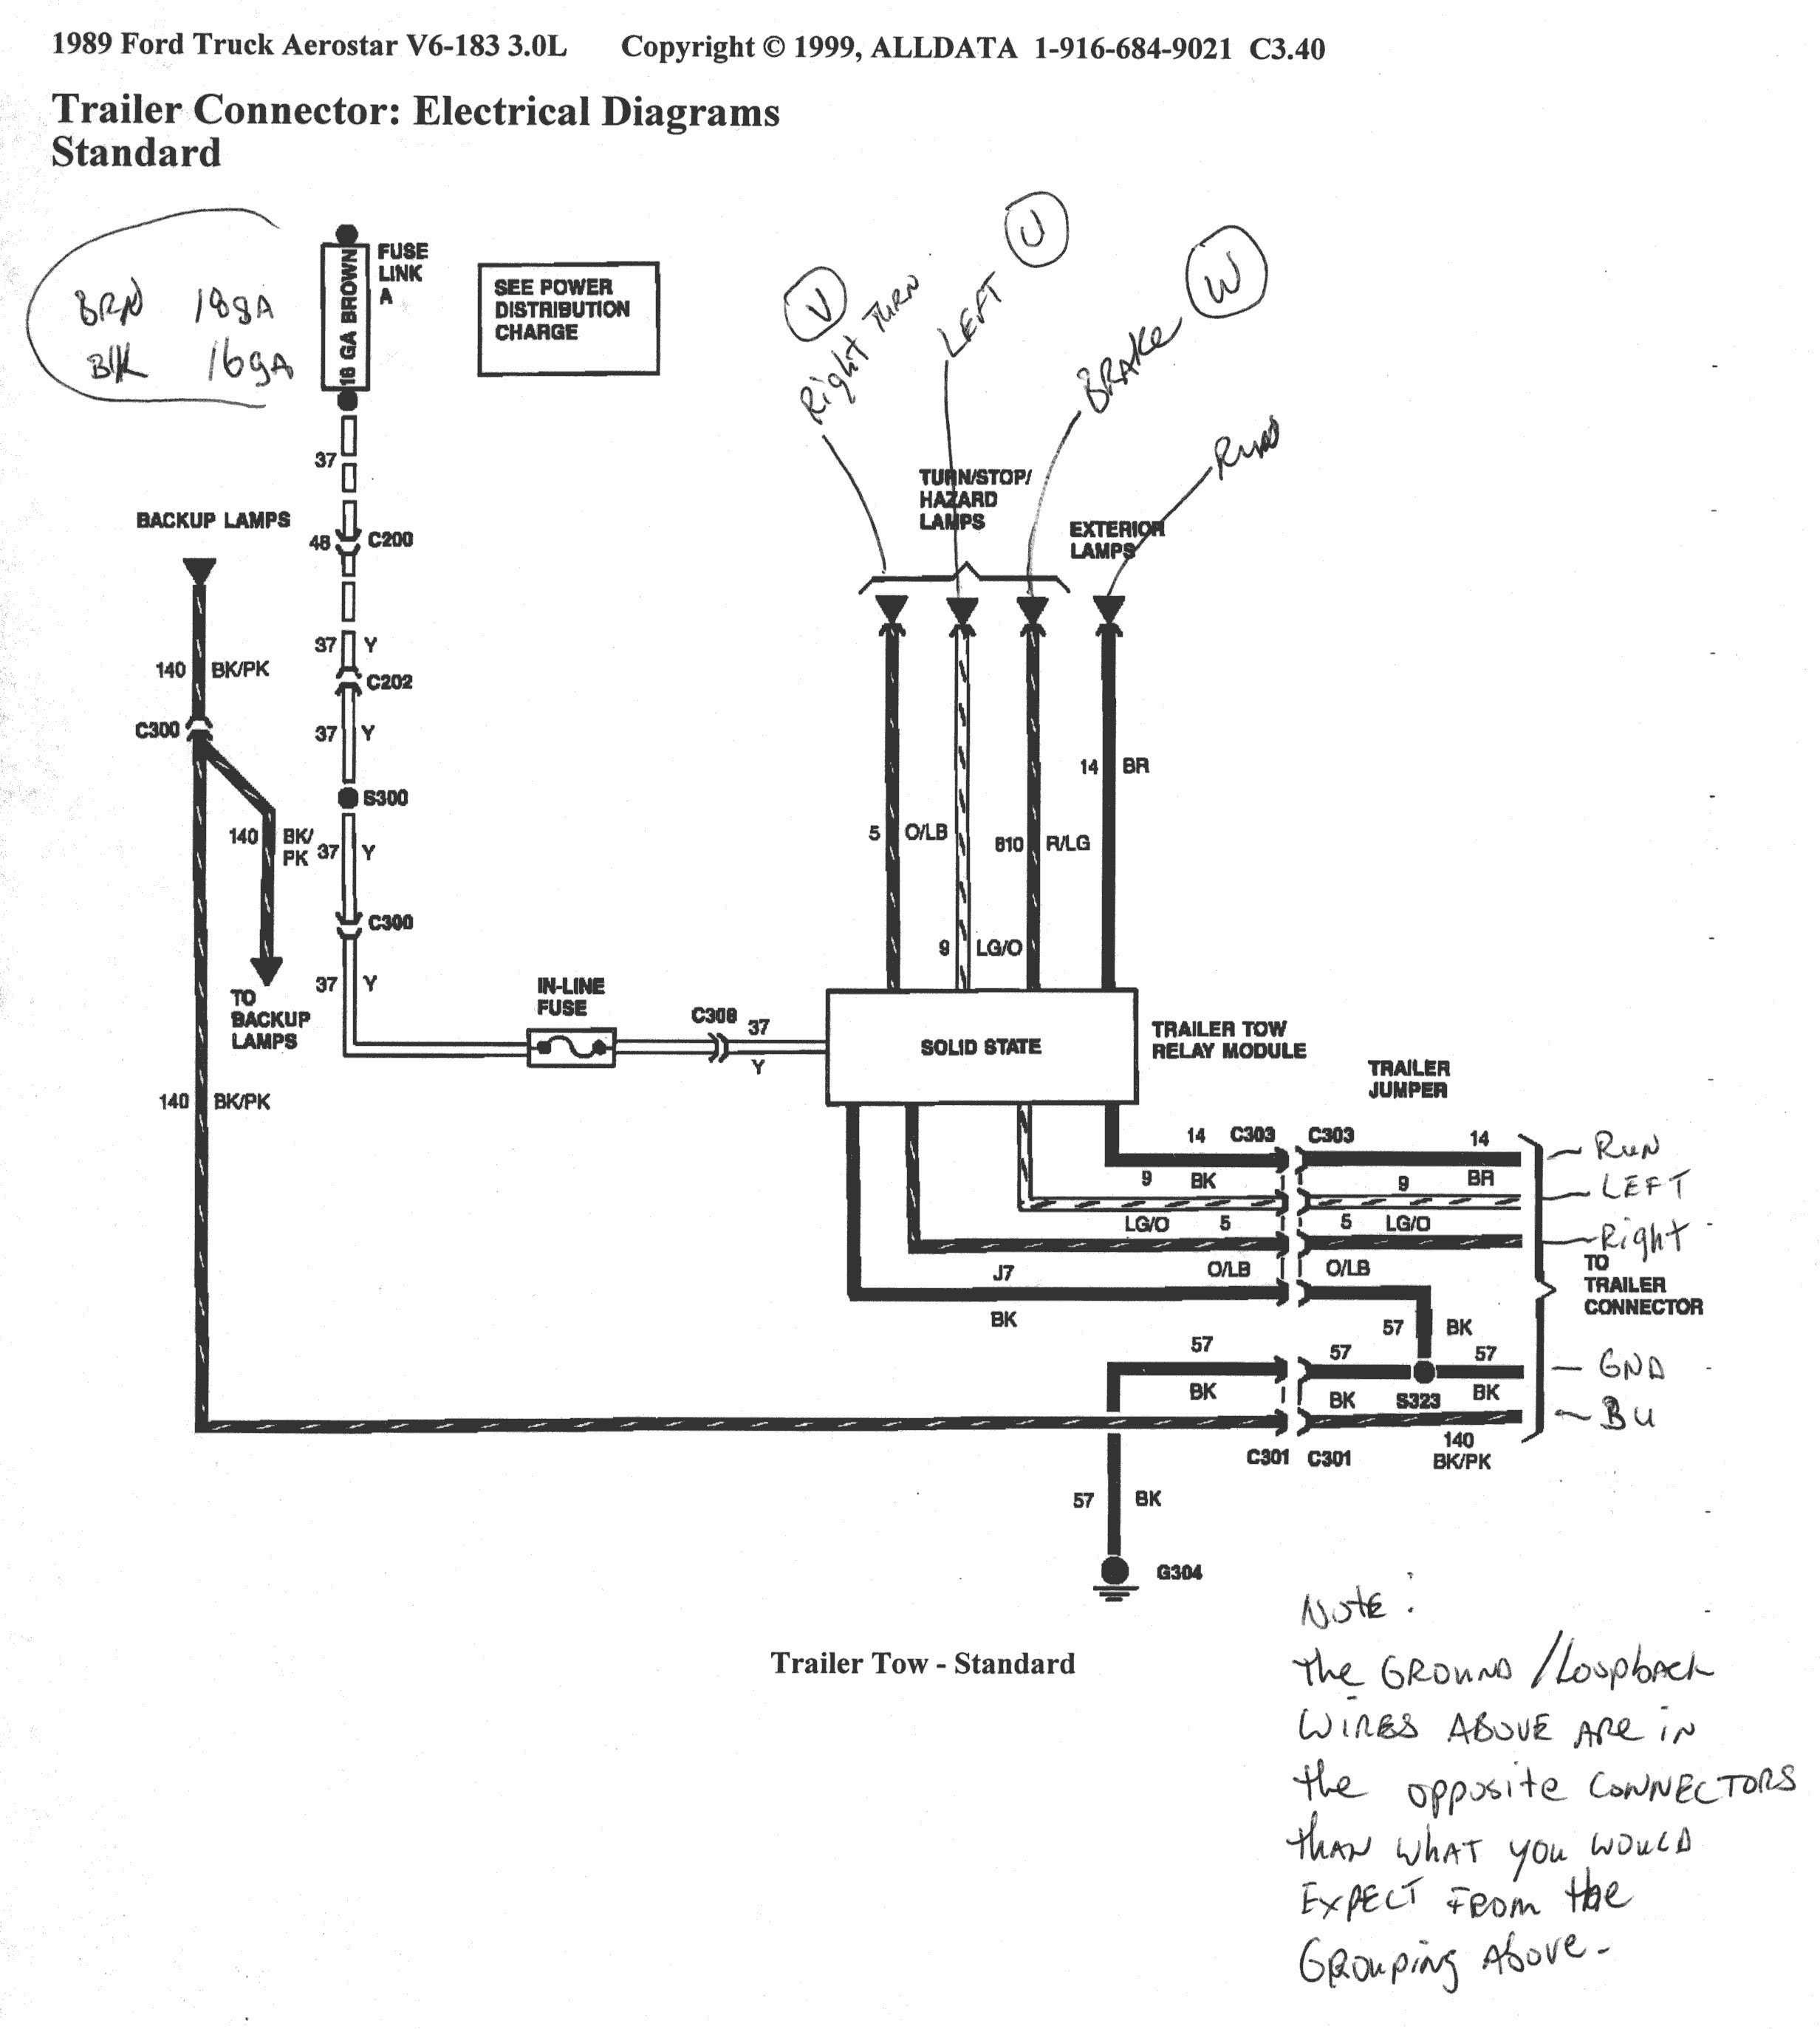 95 F250 Fuse Box | Wiring Library - F150 Trailer Wiring Diagram